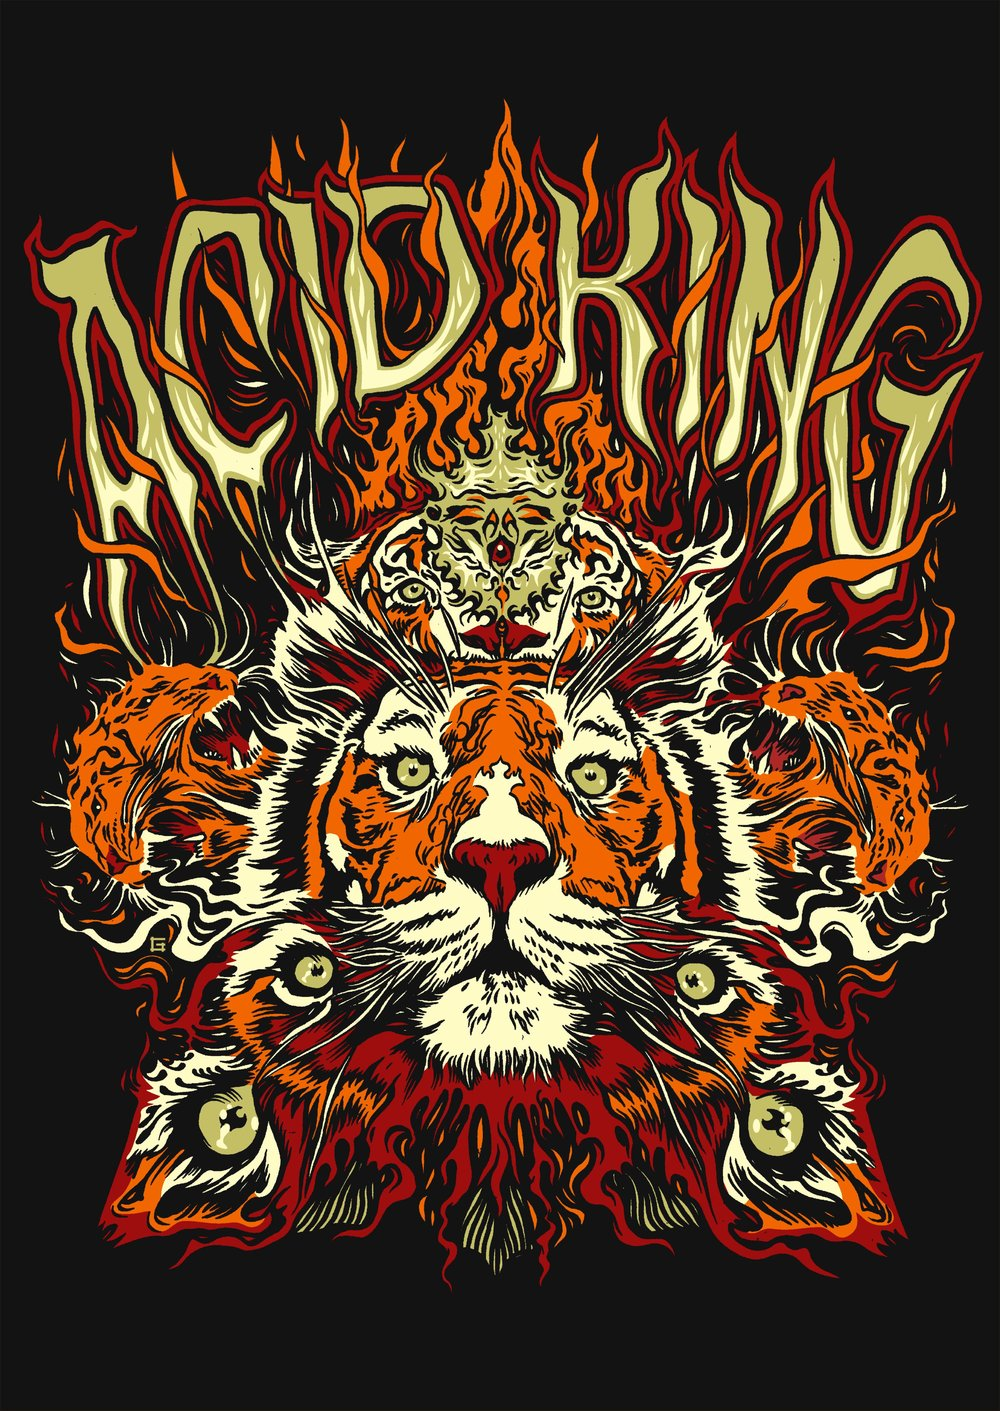 acid king tiger final.jpg